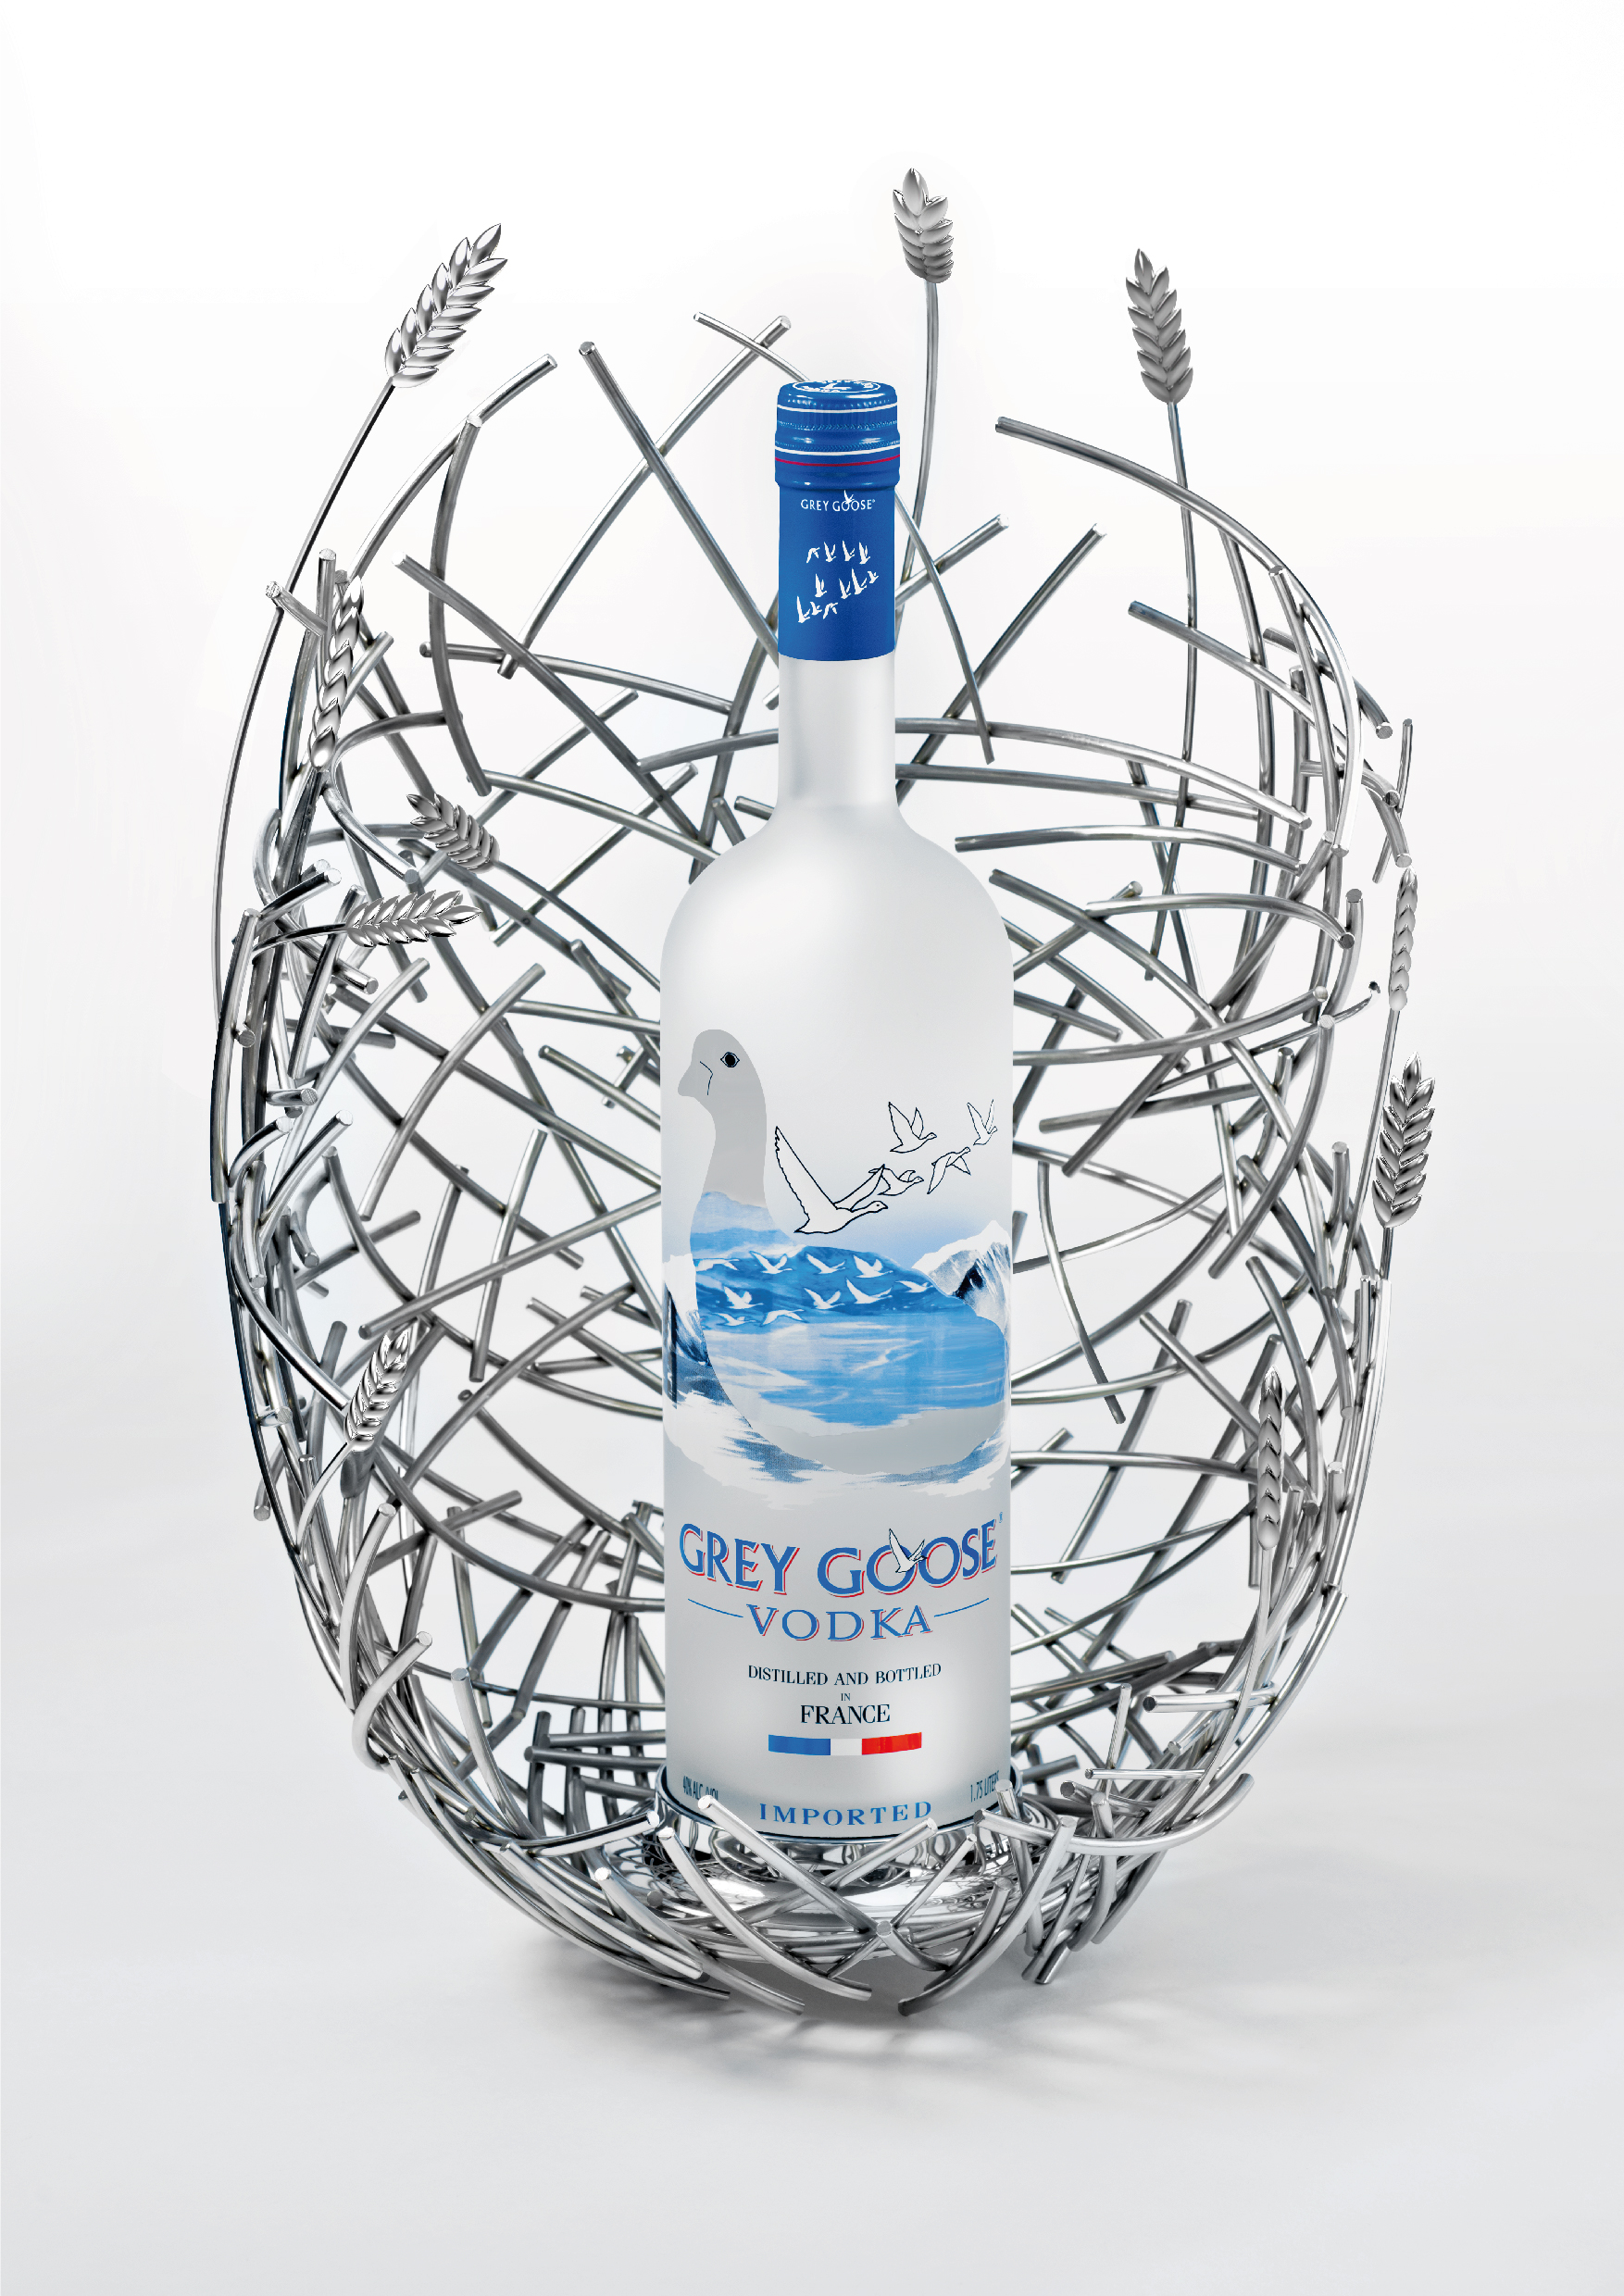 72-TAC-130903-GREY GOOSE-Glorifier_Packshot face sans plaque 2 2